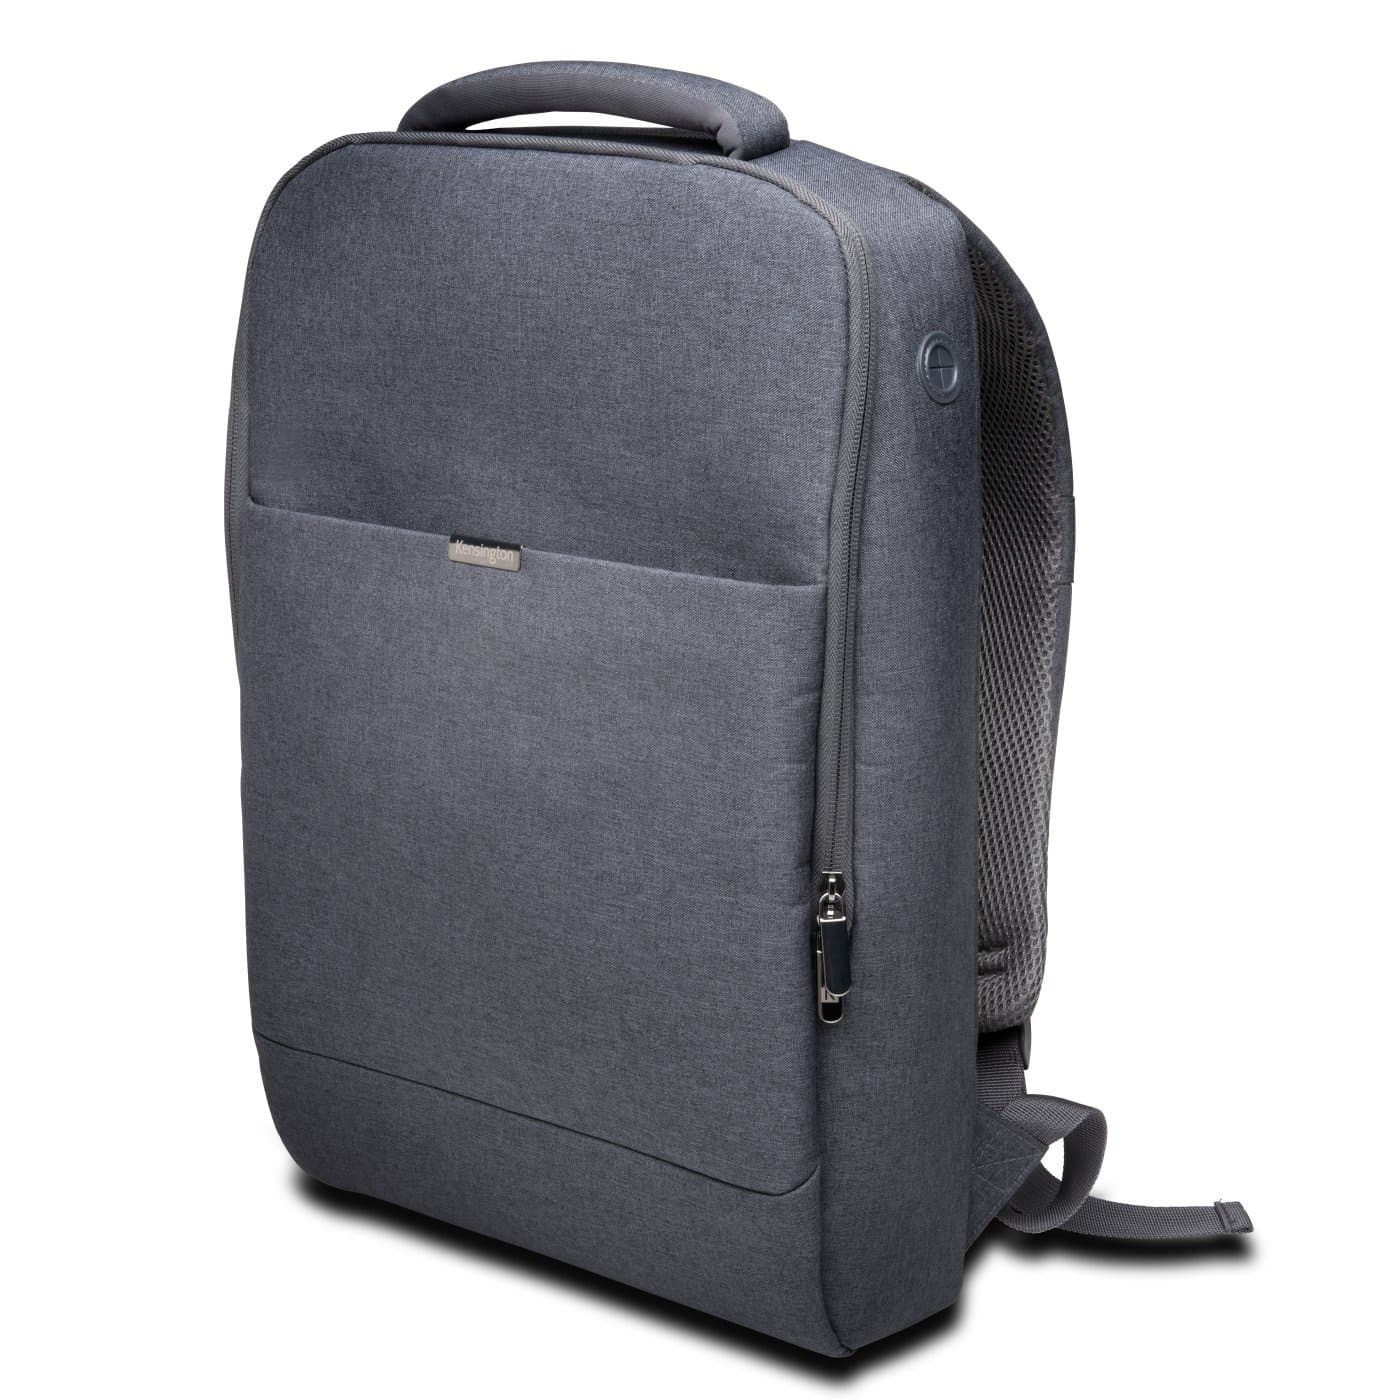 Kensington - Products - Laptop Carry Cases - LM150 Backpack — Cool ...